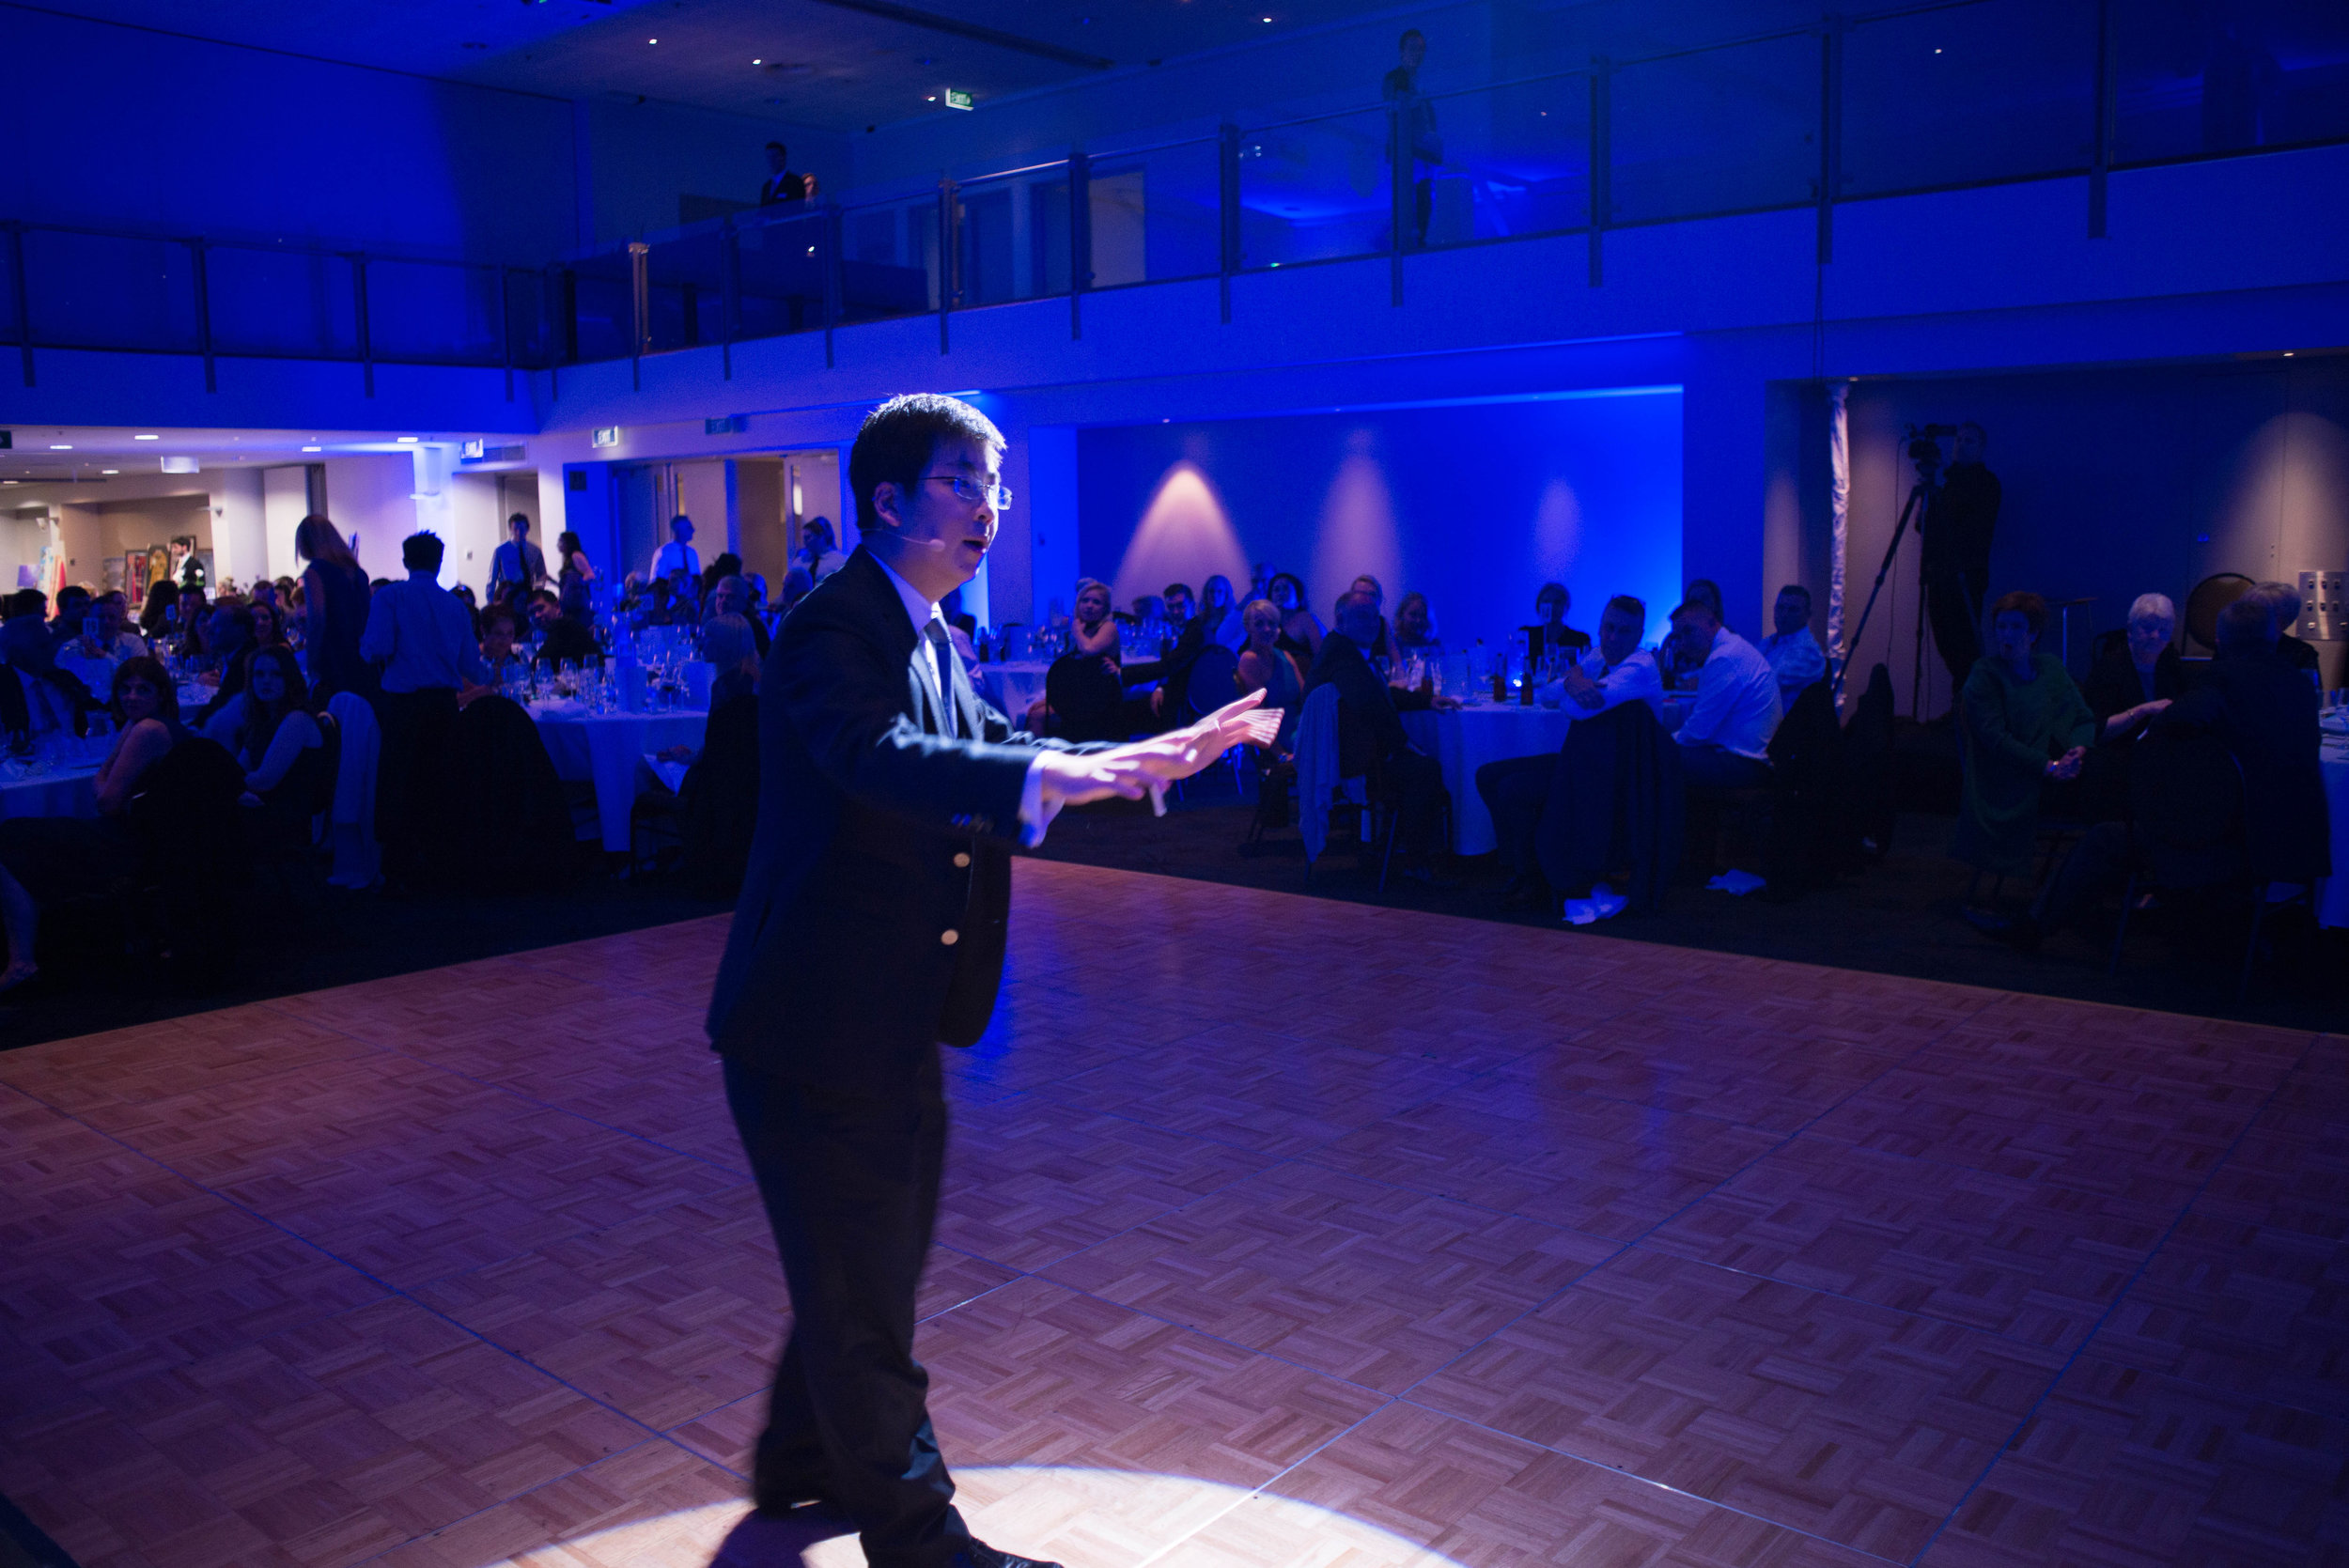 Weddings - - Magician performs on a stage for all audiences- Visual and mind-blowing demonstrations with audience involvement- Easily customisable for your event / message